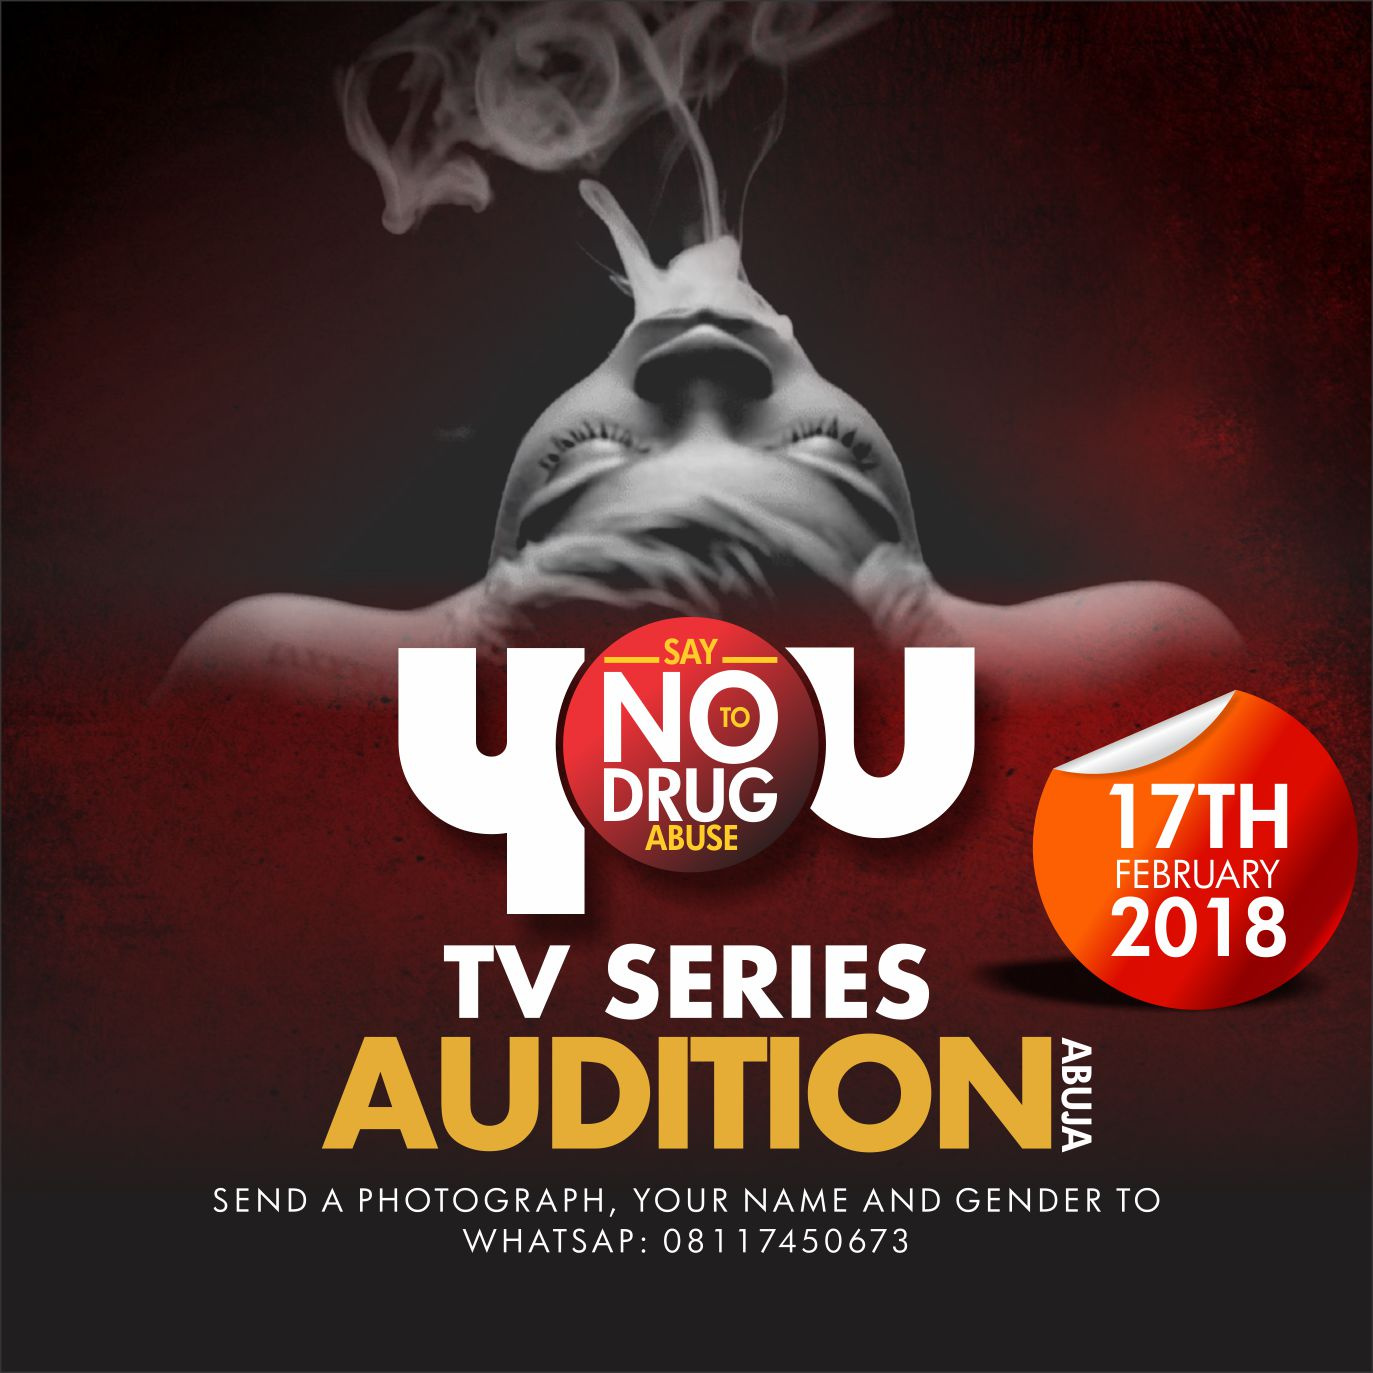 YOU AUDITION